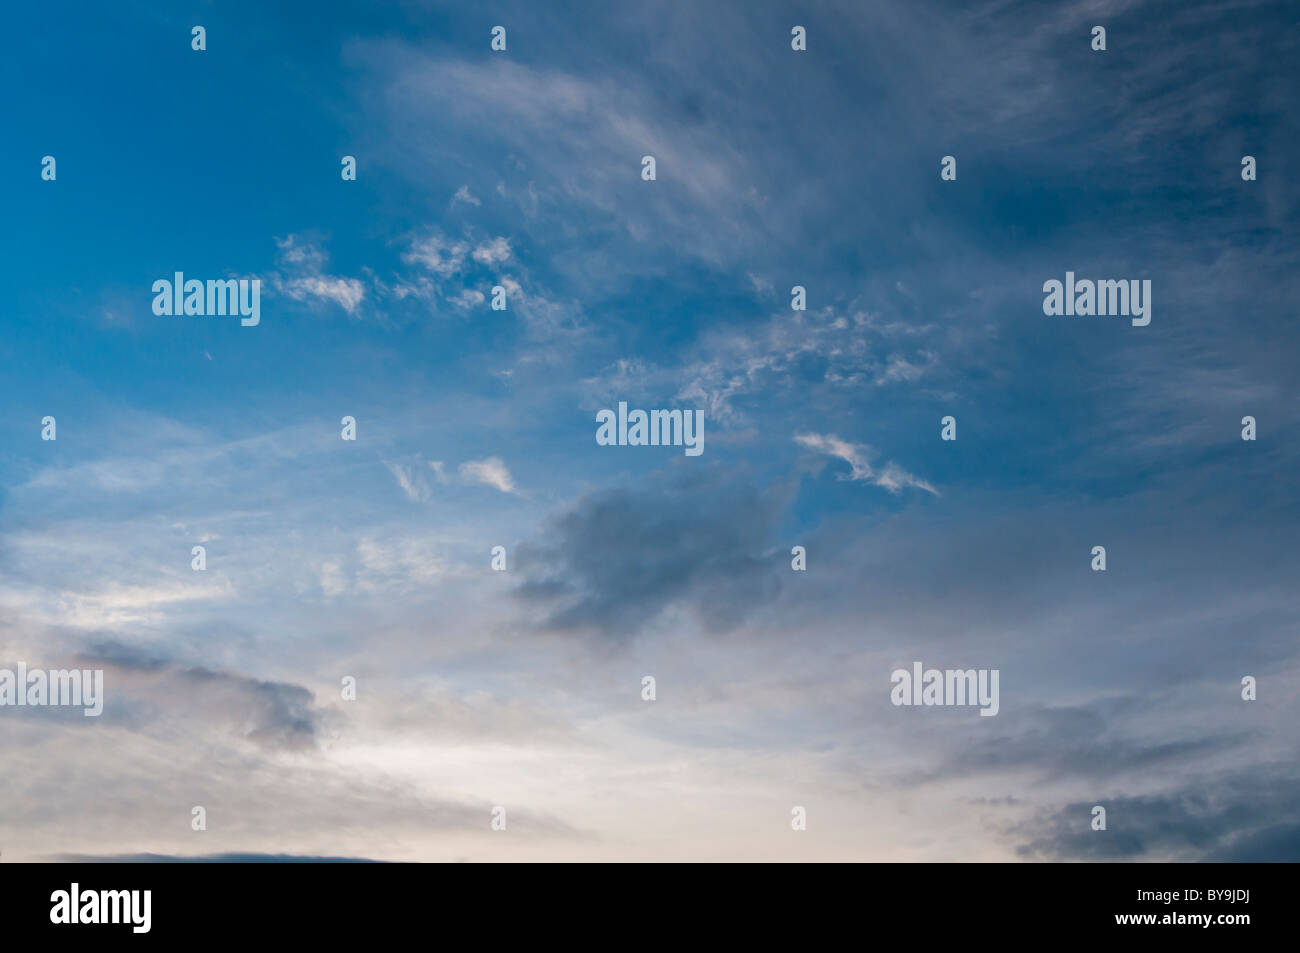 Blue daytime sky with clouds - Stock Image